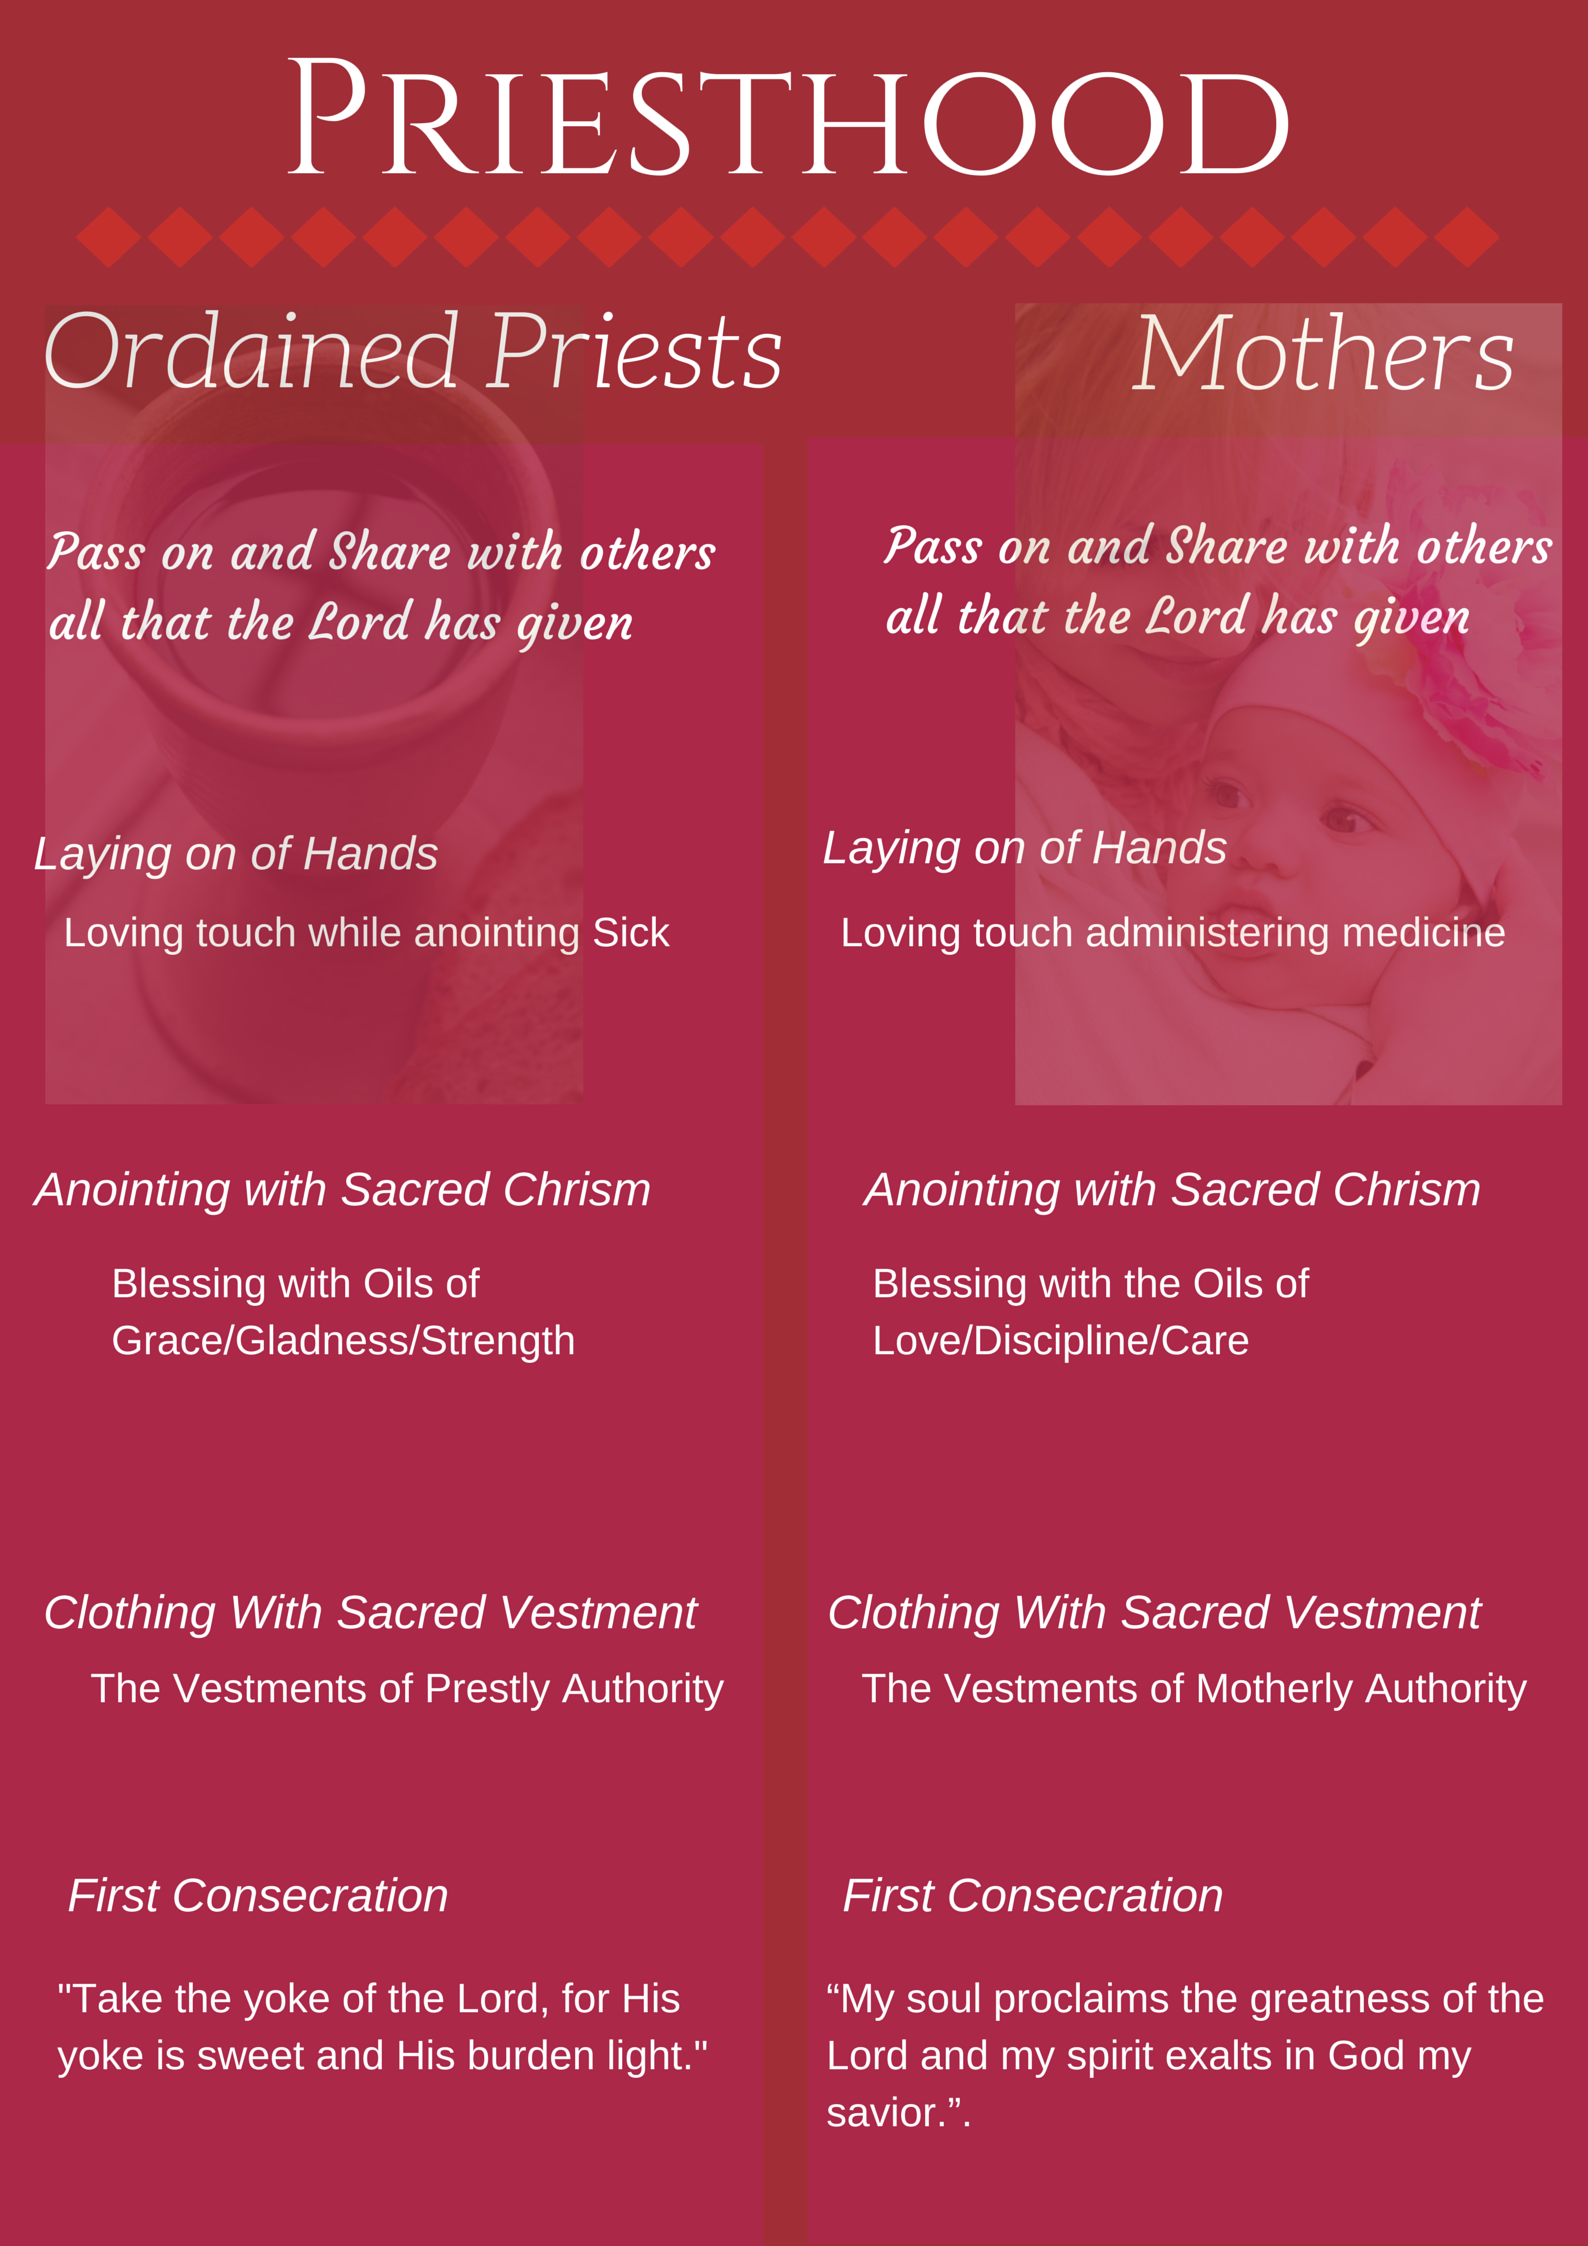 Priesthood of the Church